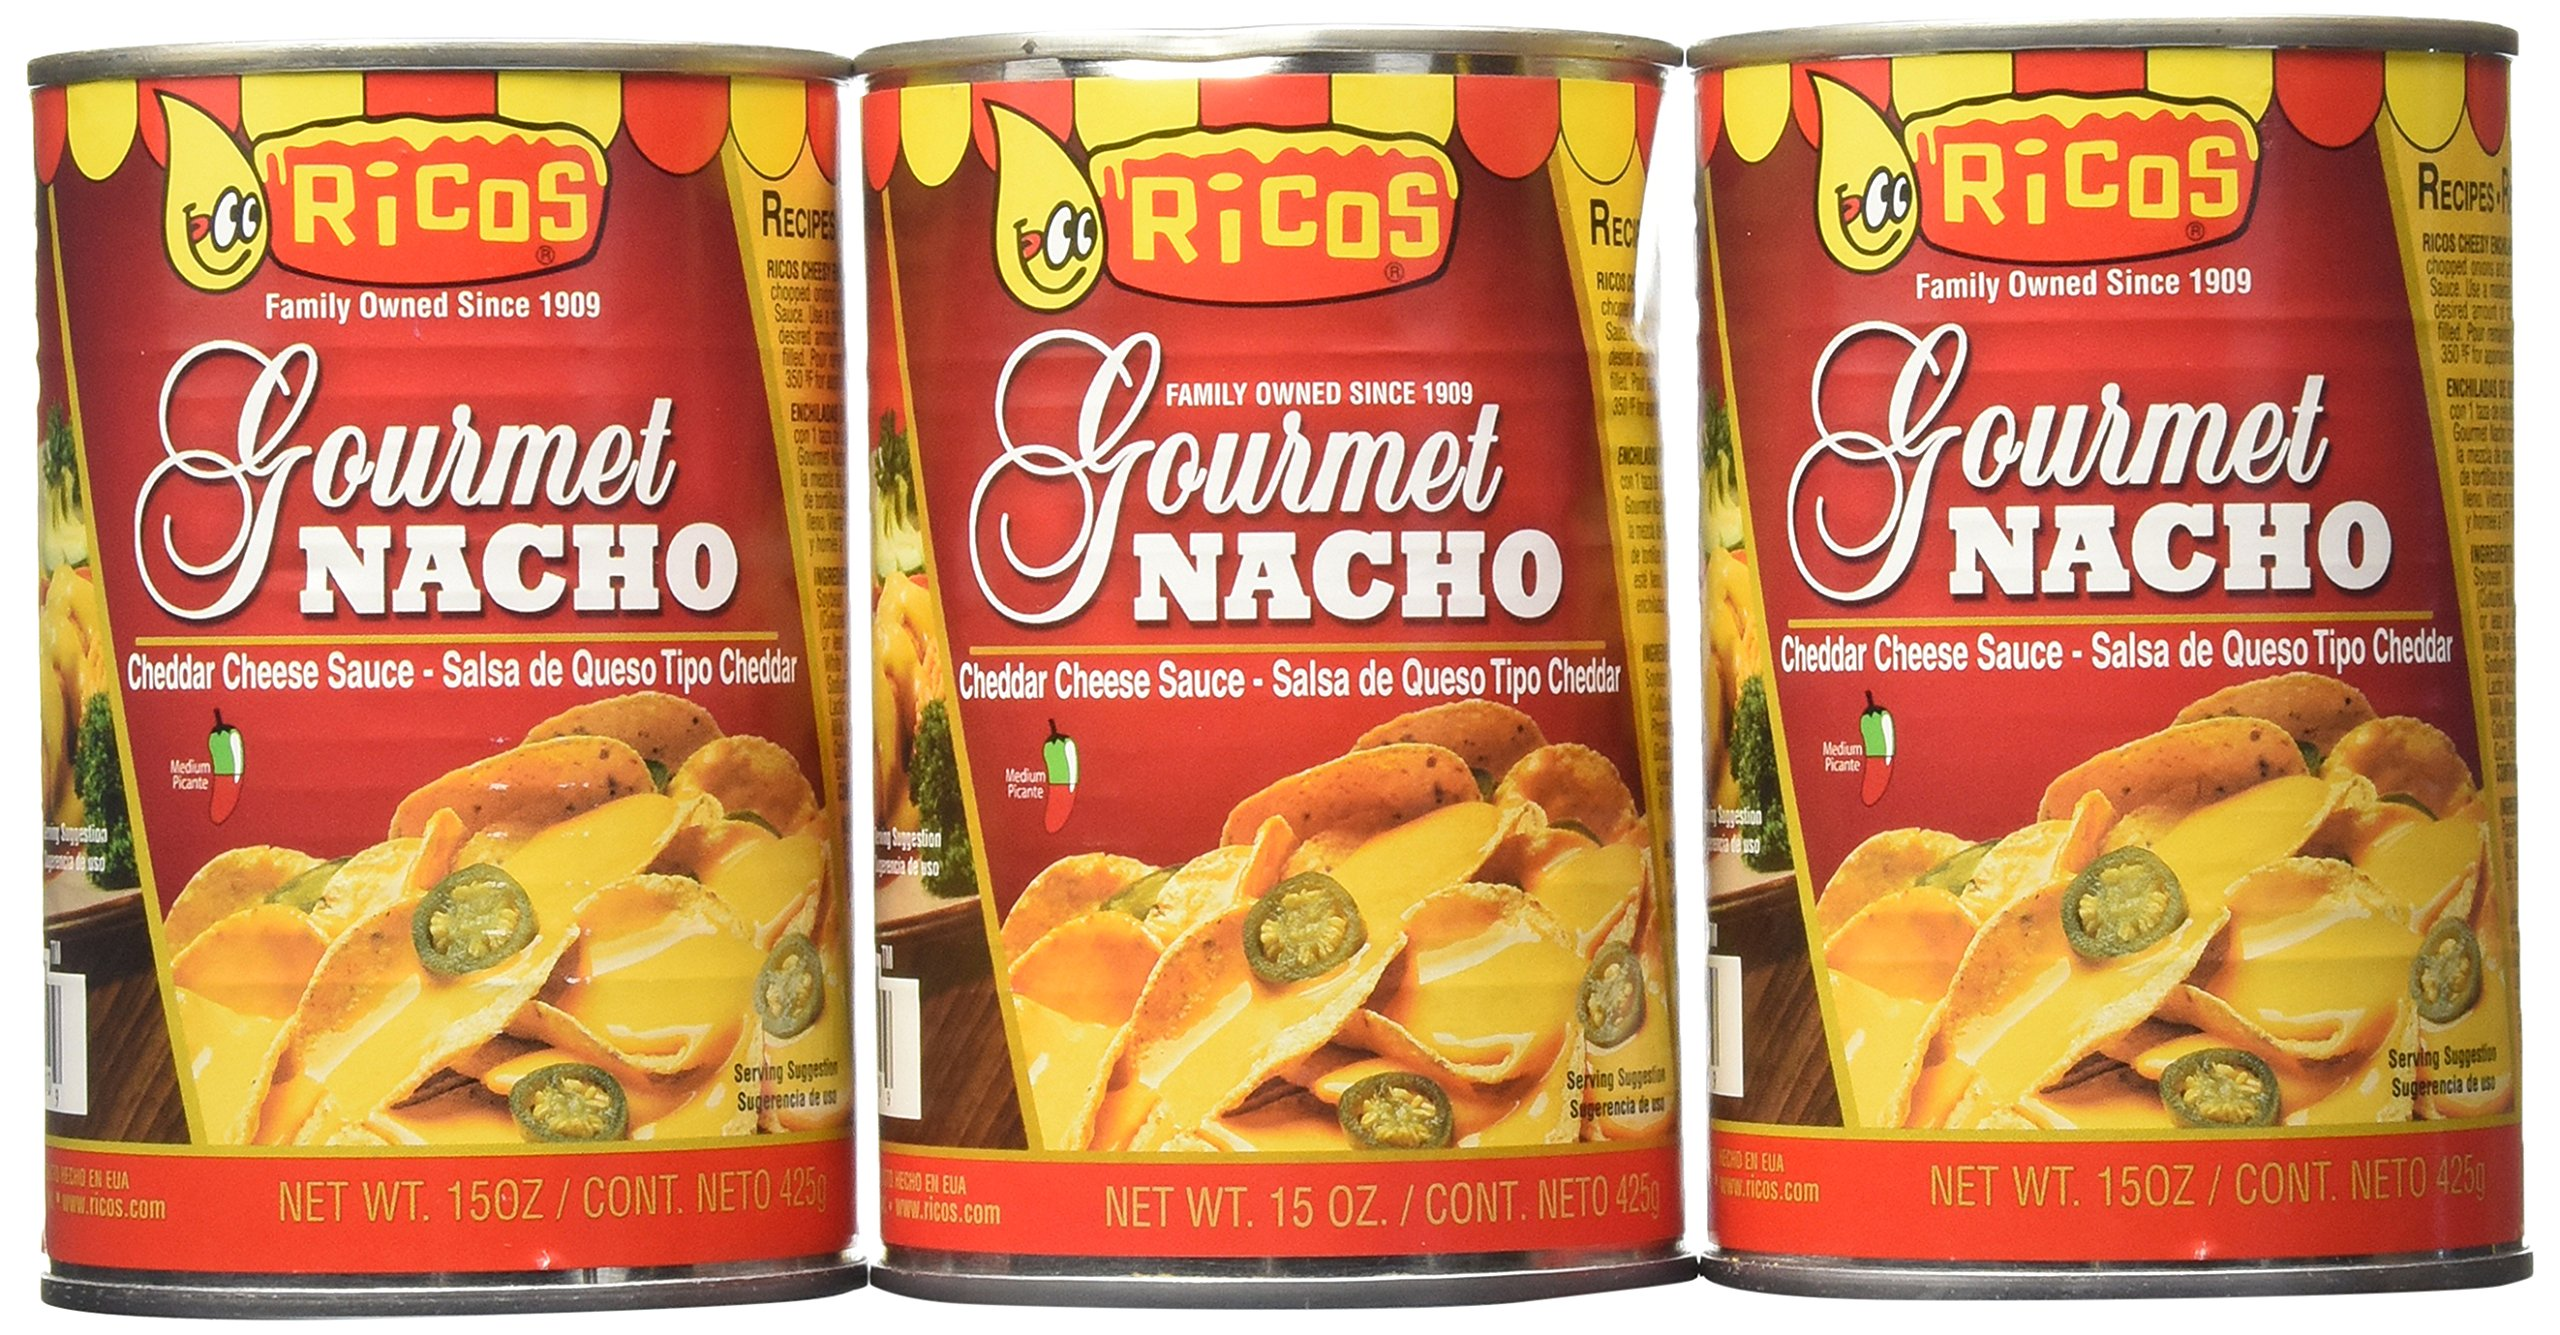 Ricos Gourmet Nacho Cheddar Cheese Sauce with Jalapenos (Pack of 3) 15 oz Cans